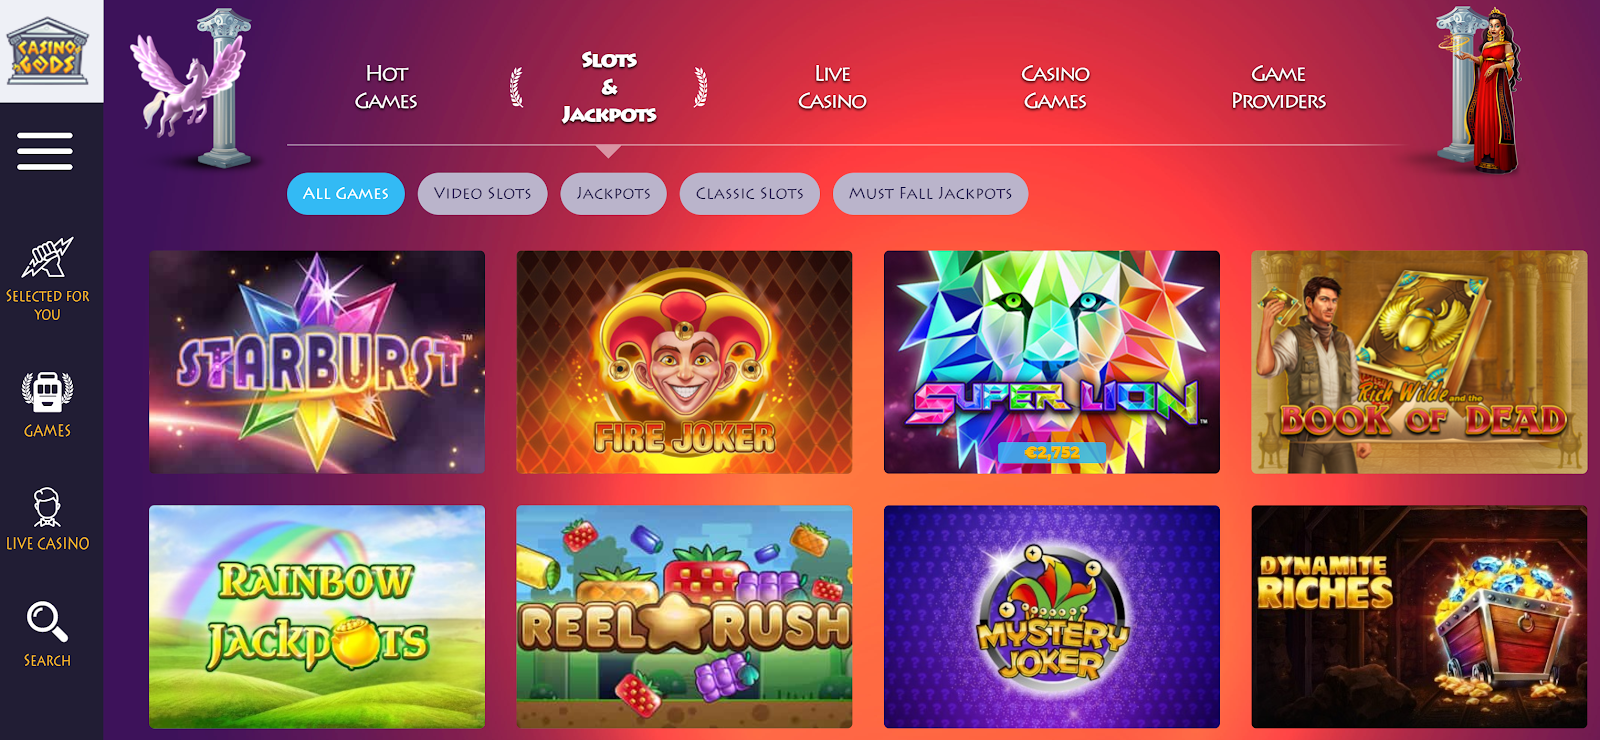 Casino Gods has loads of excellent slots games you can play